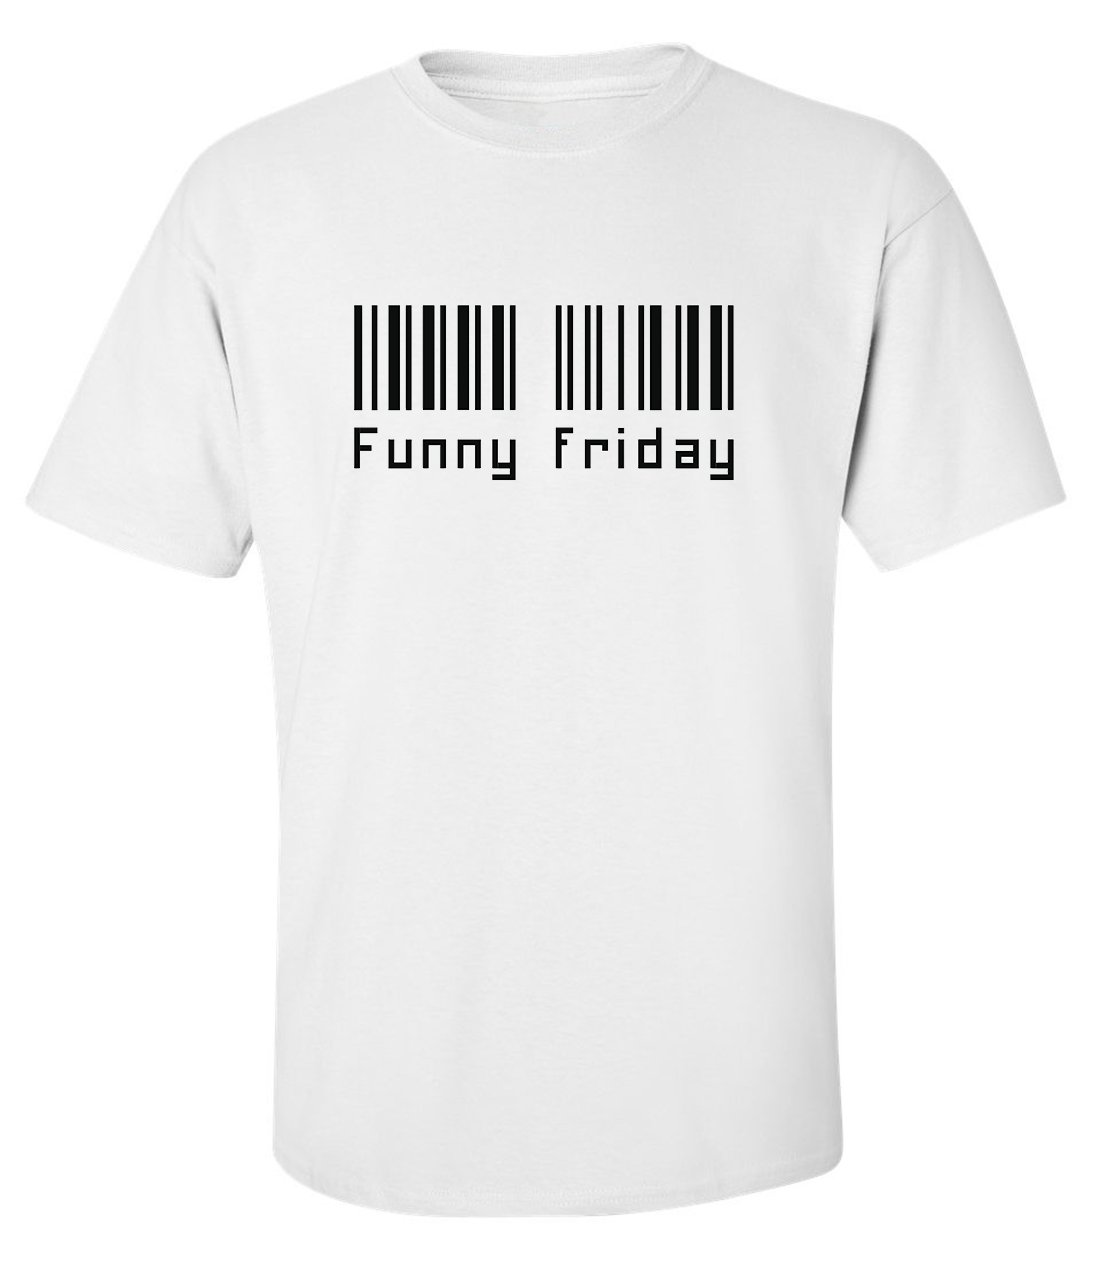 Funny friday bar code fashioned men printed white cotton t-shirt size M